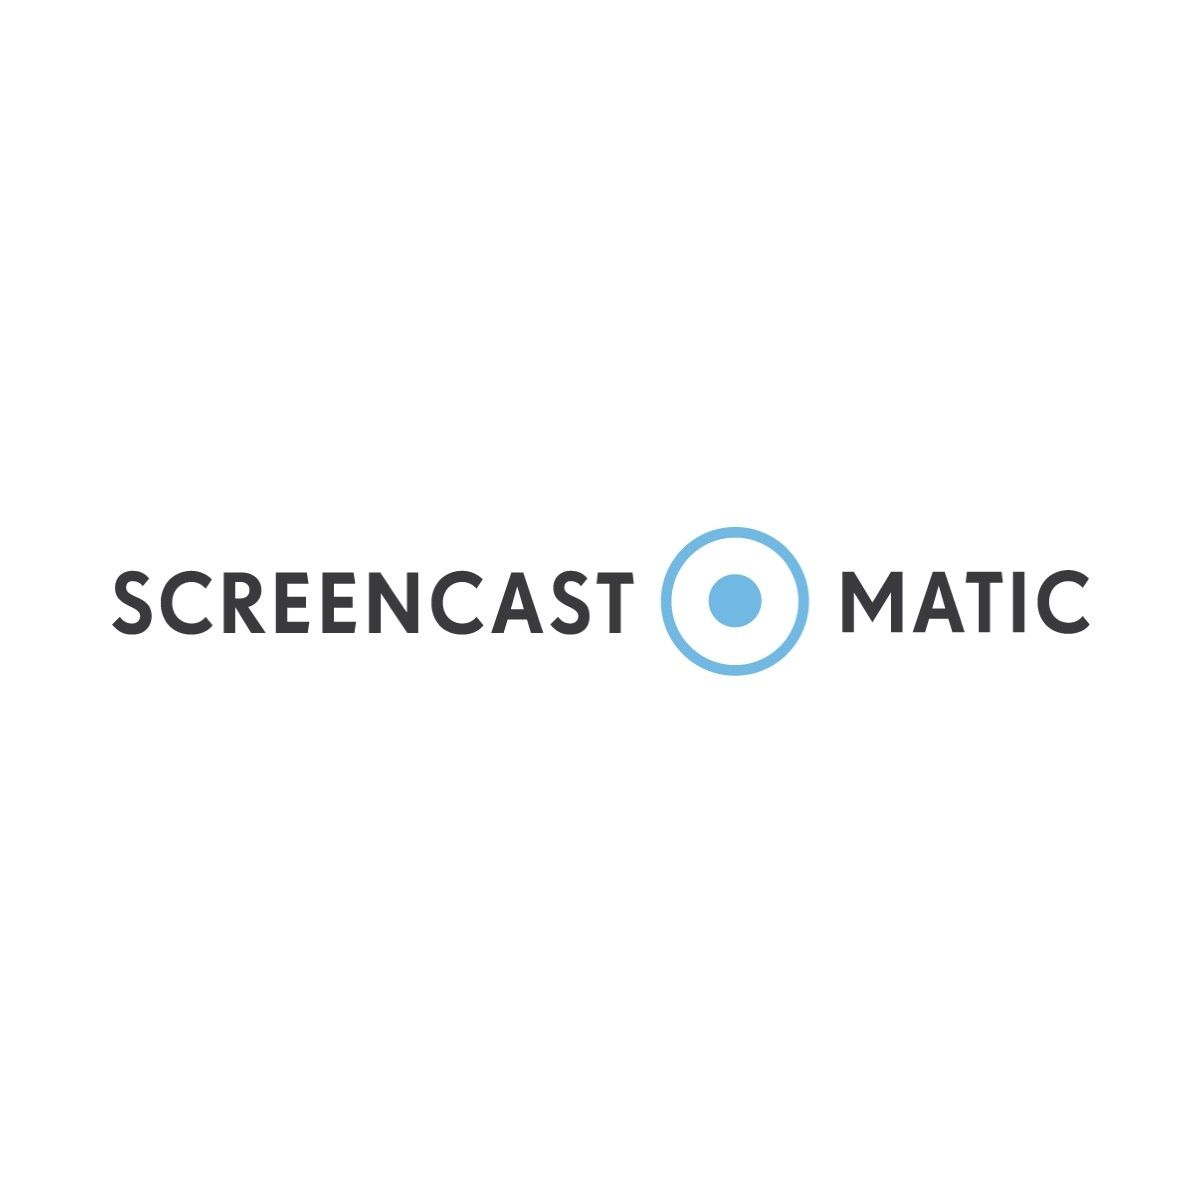 Screencast-o-matic logo